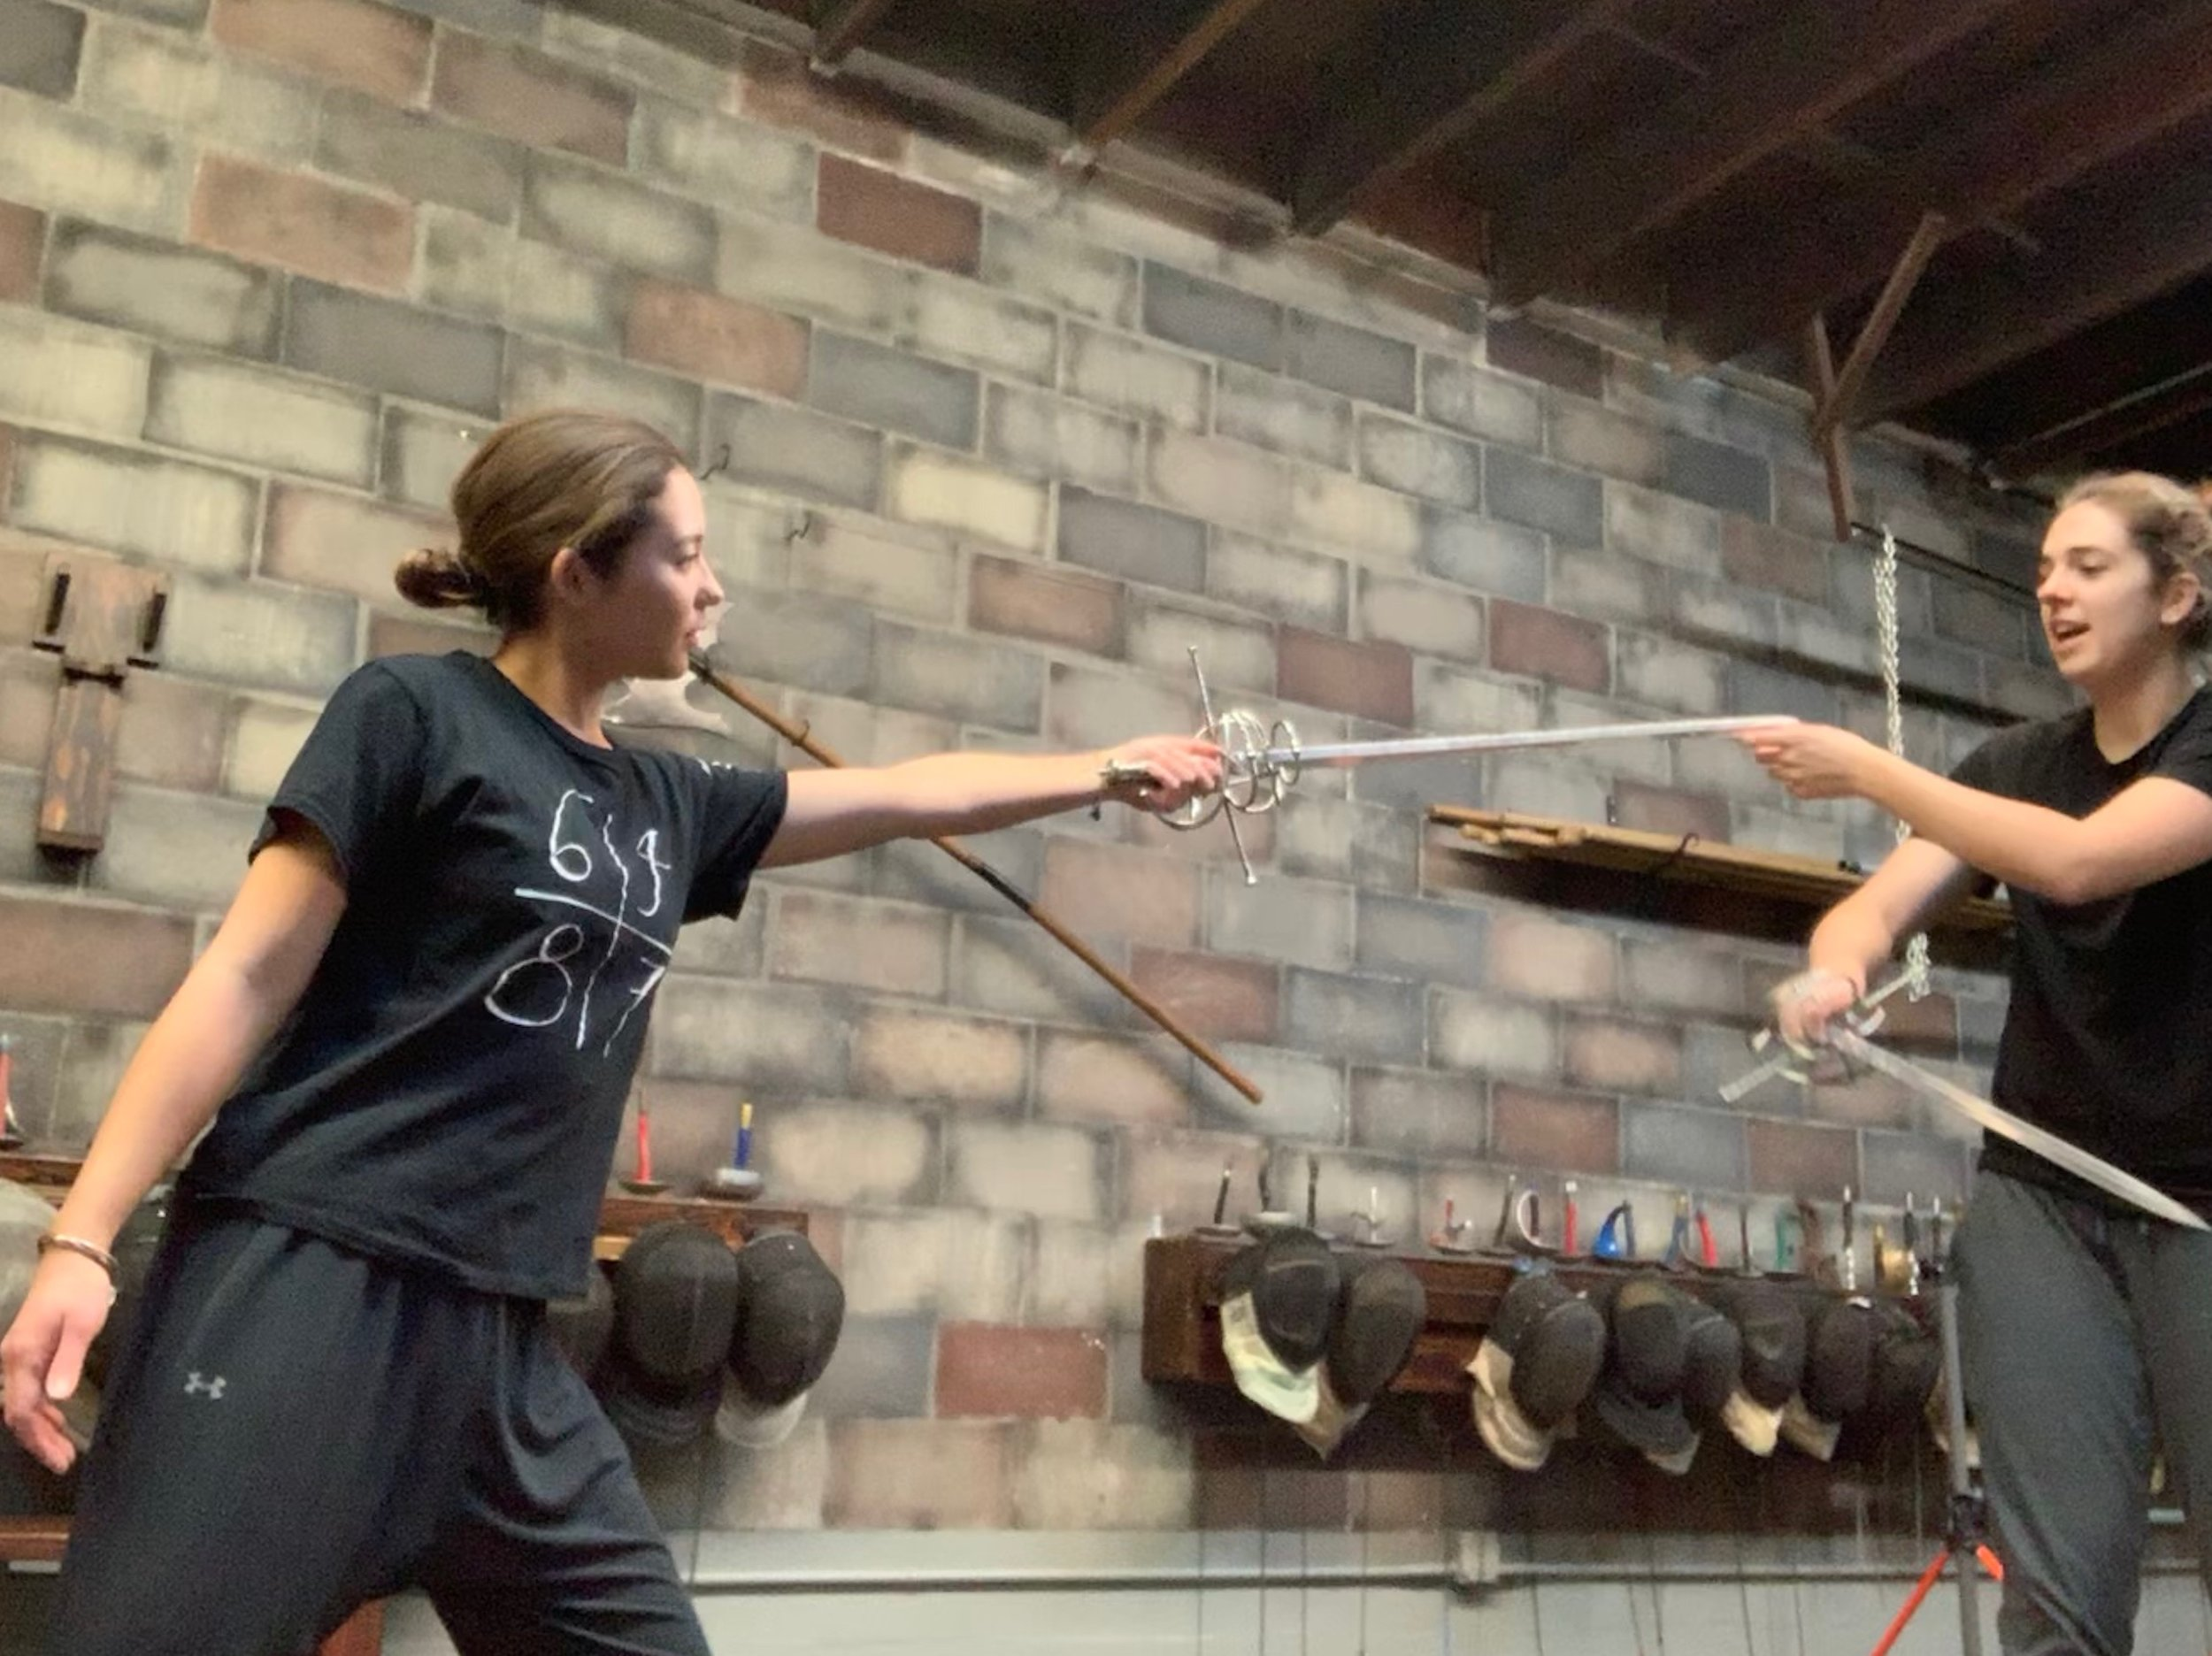 Stage combat training by expert fencers at Swordplay LA.